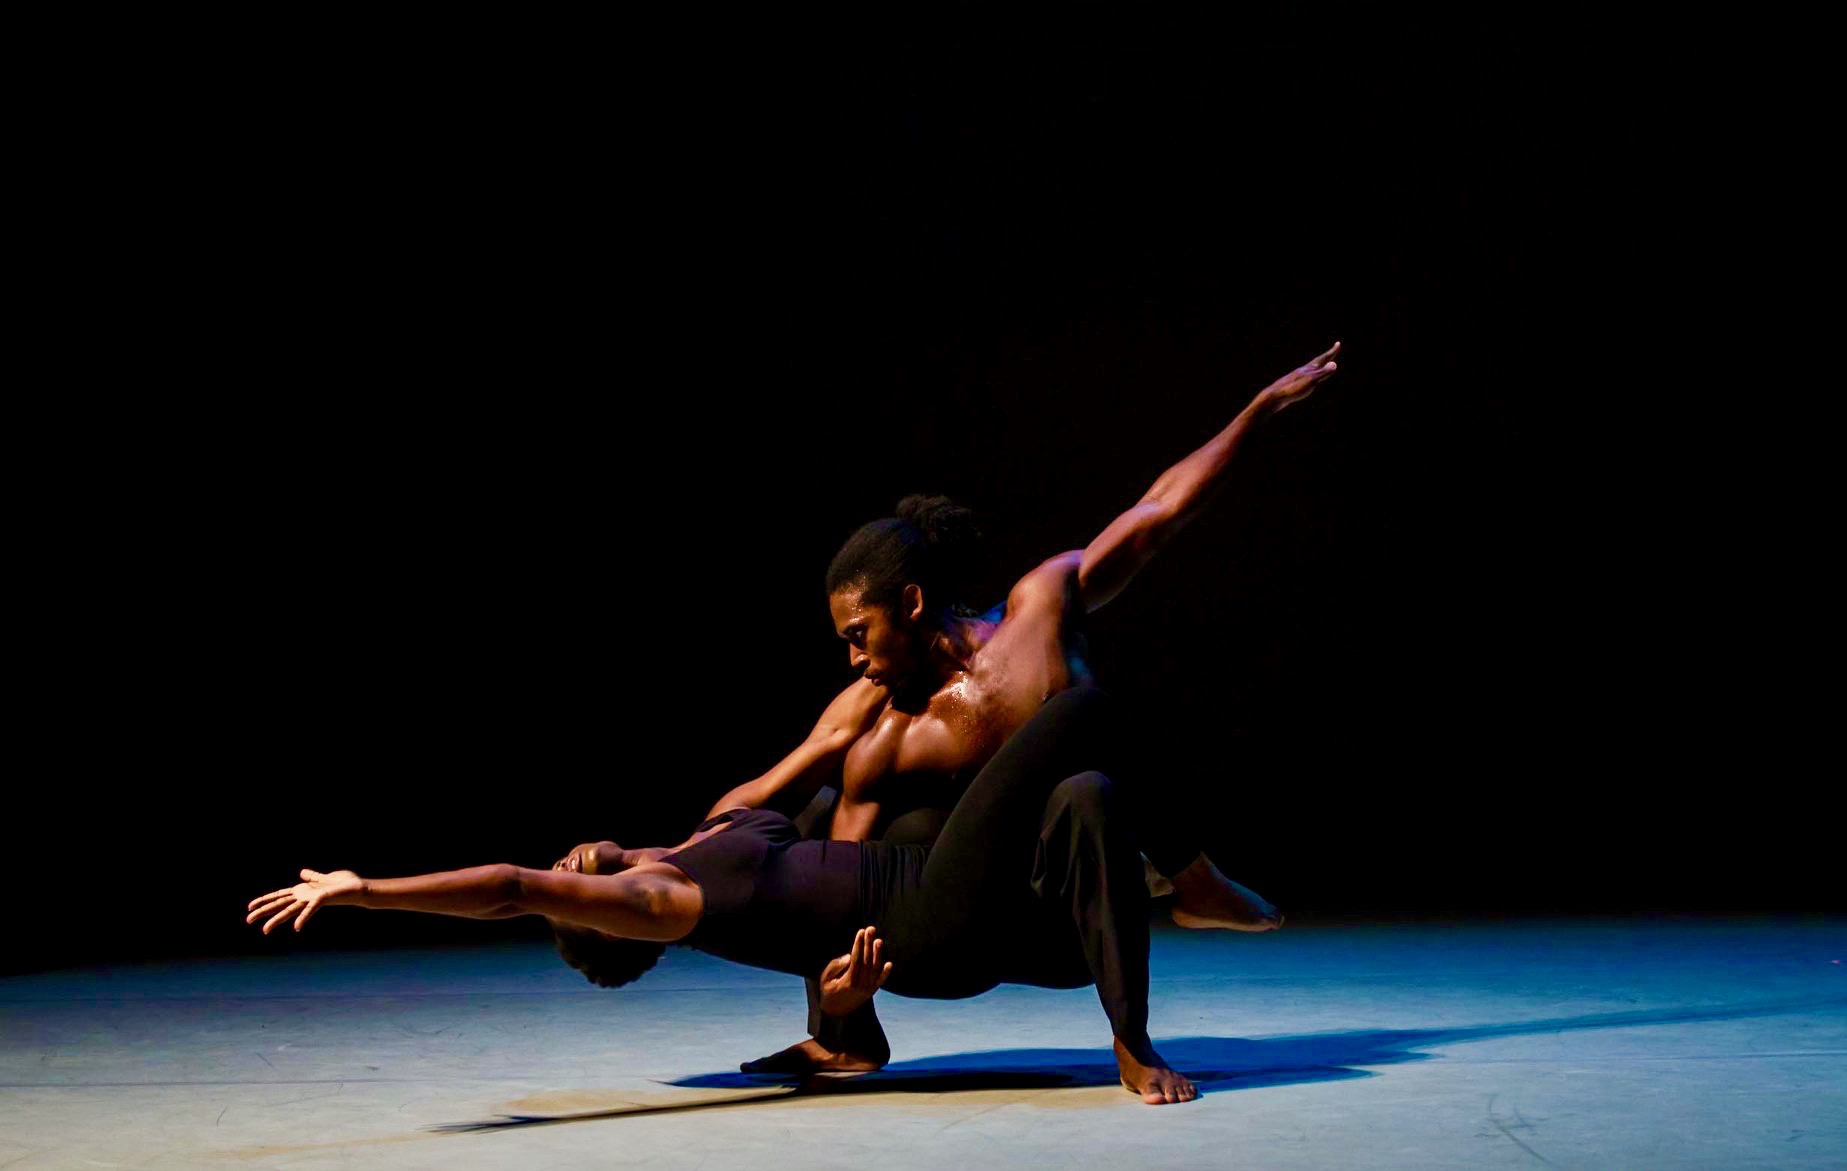 Motives & Thoughts - Choreographer: Jamal CallenderMusic: Max RichterDancers: 6